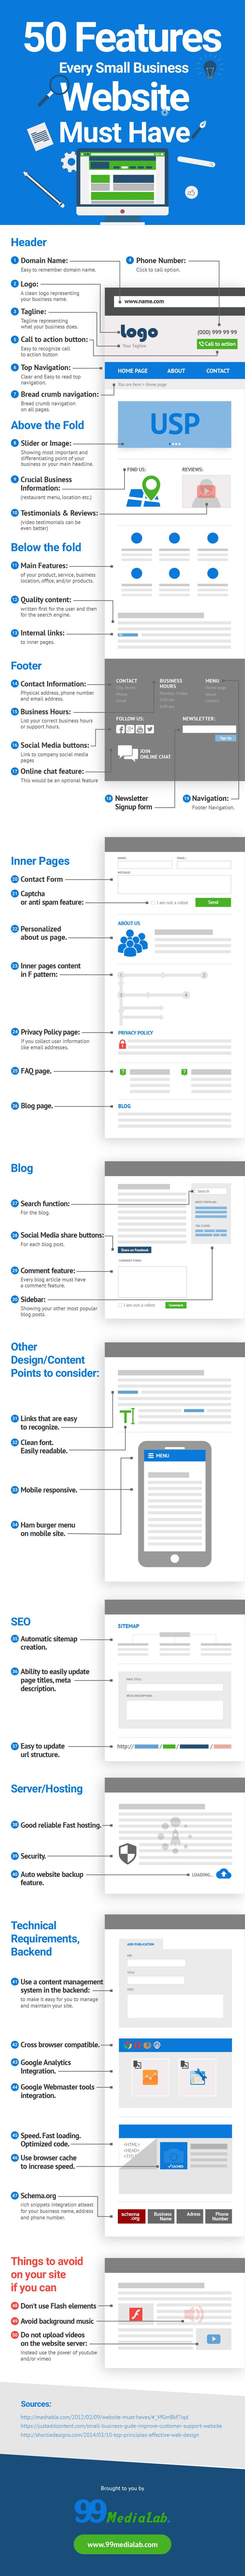 50 Features Every Small Business Website Must Have! #infographic #smallbiz #smallbusiness